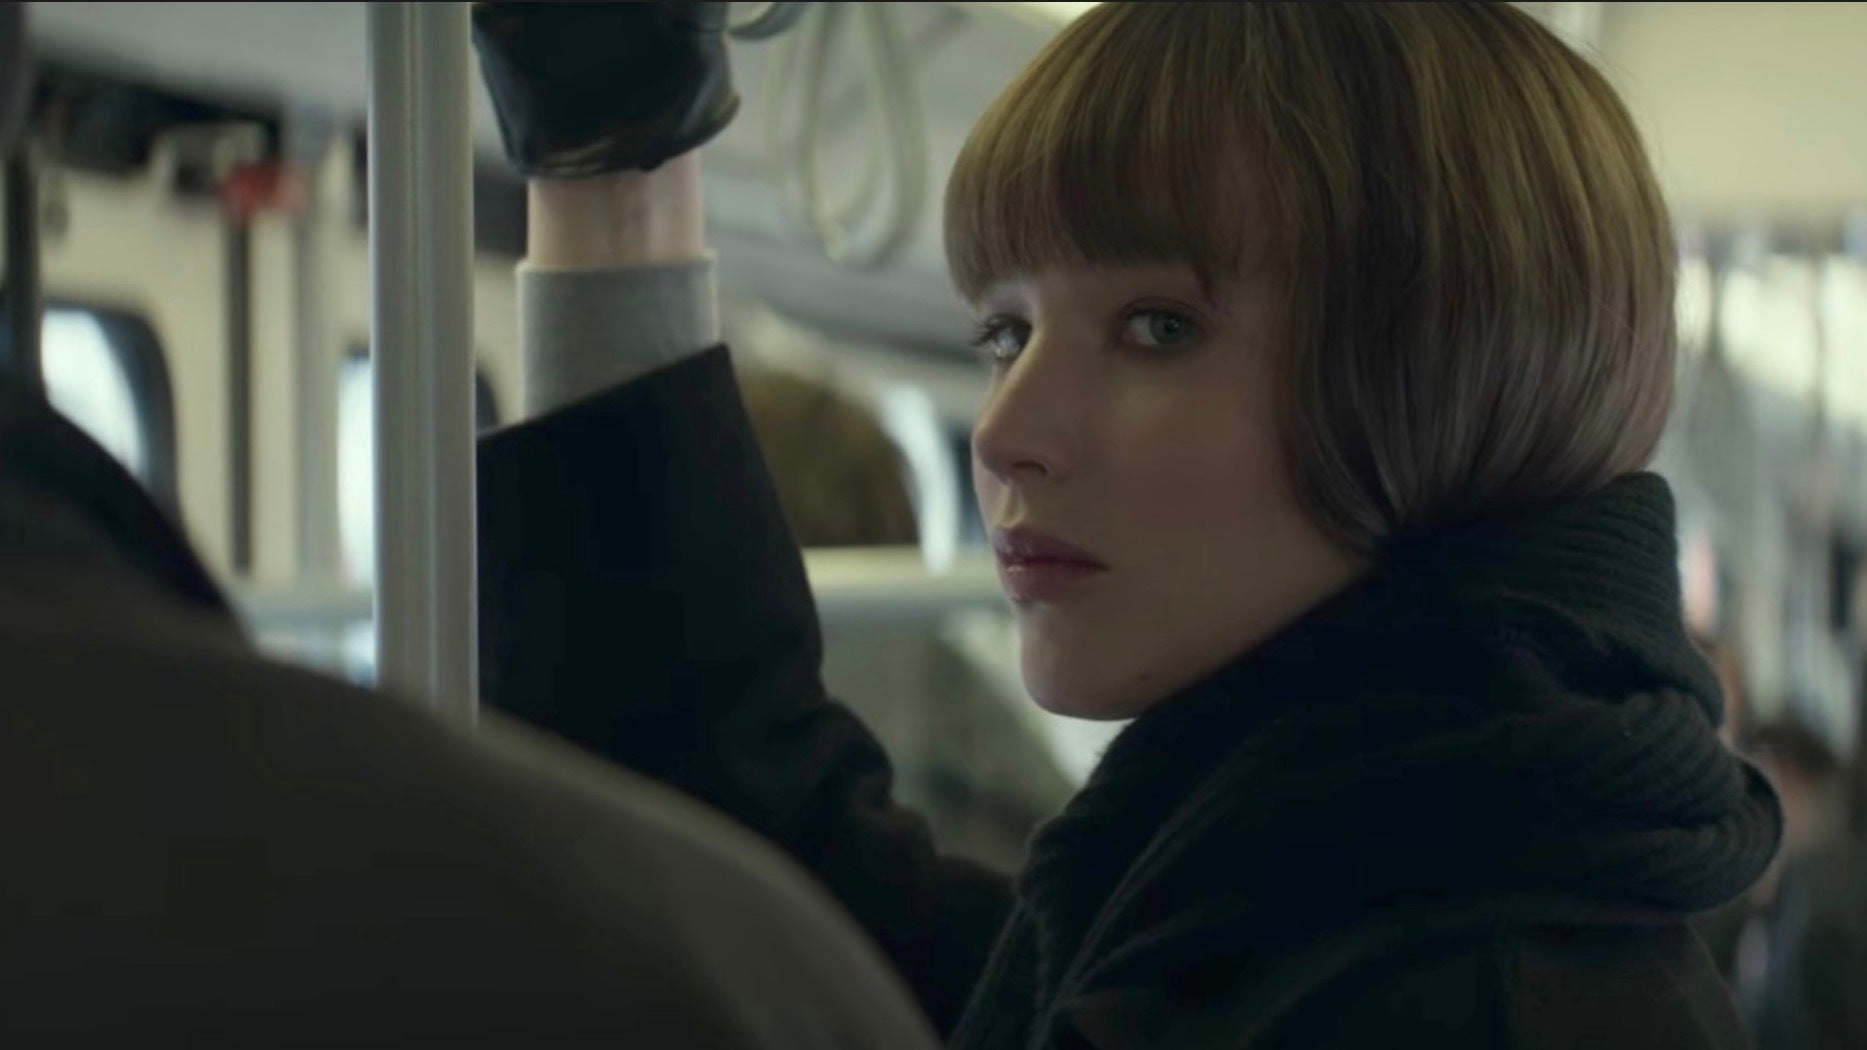 Somehow, The Director Of Red Sparrow Doesn't See Comparisons To Marvel's Black Widow